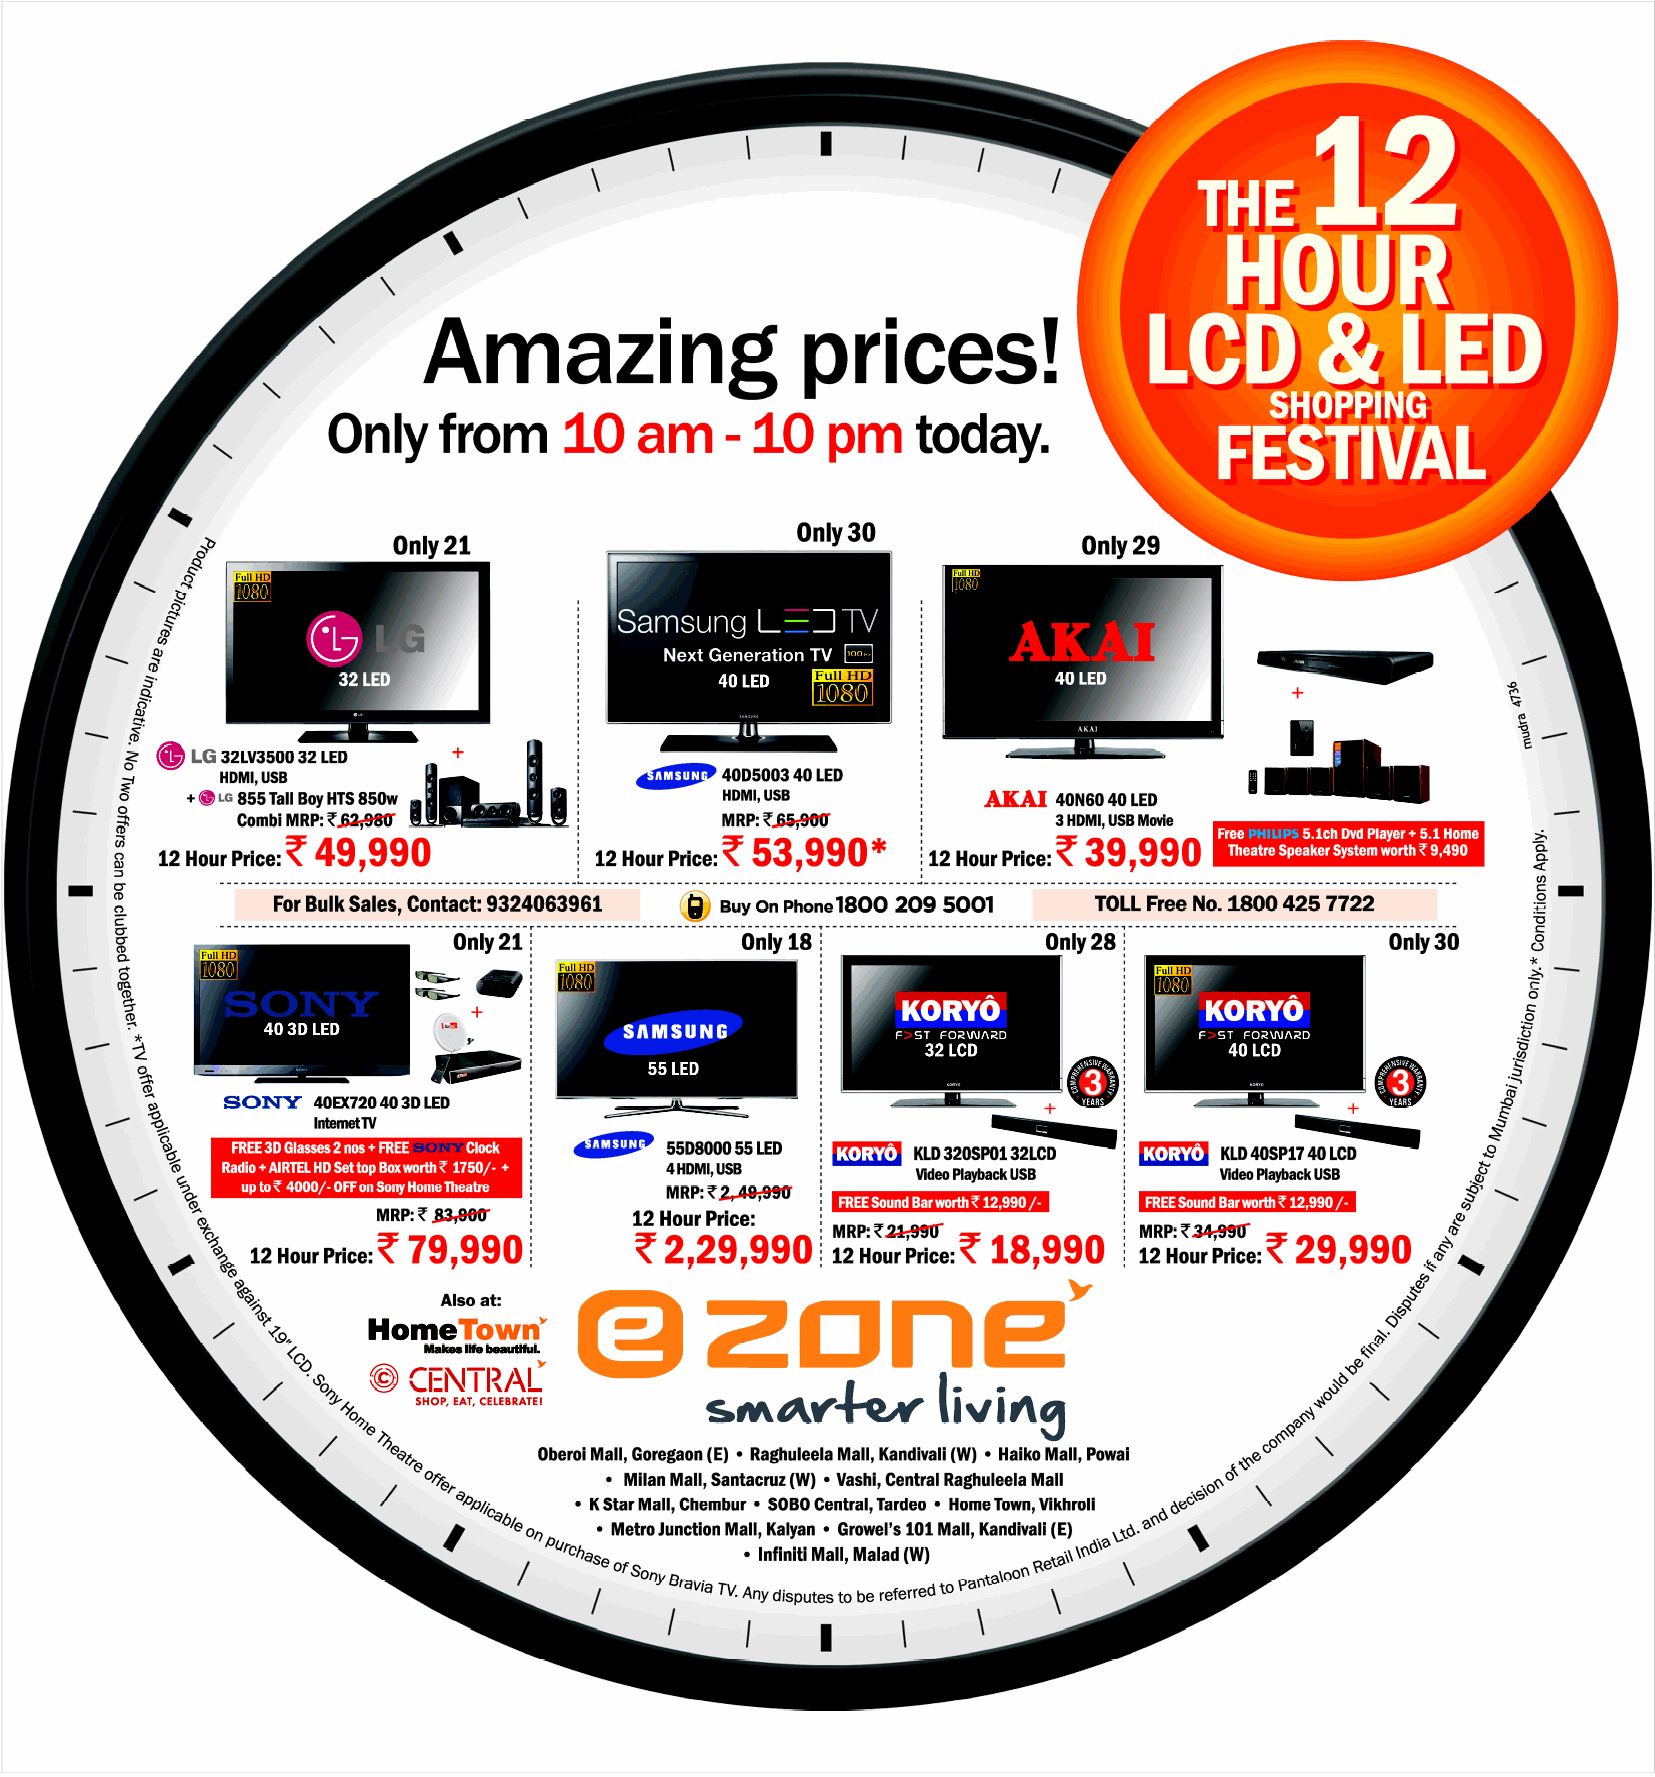 Ezone - 12 Hour LCD & LED Shopping Festival